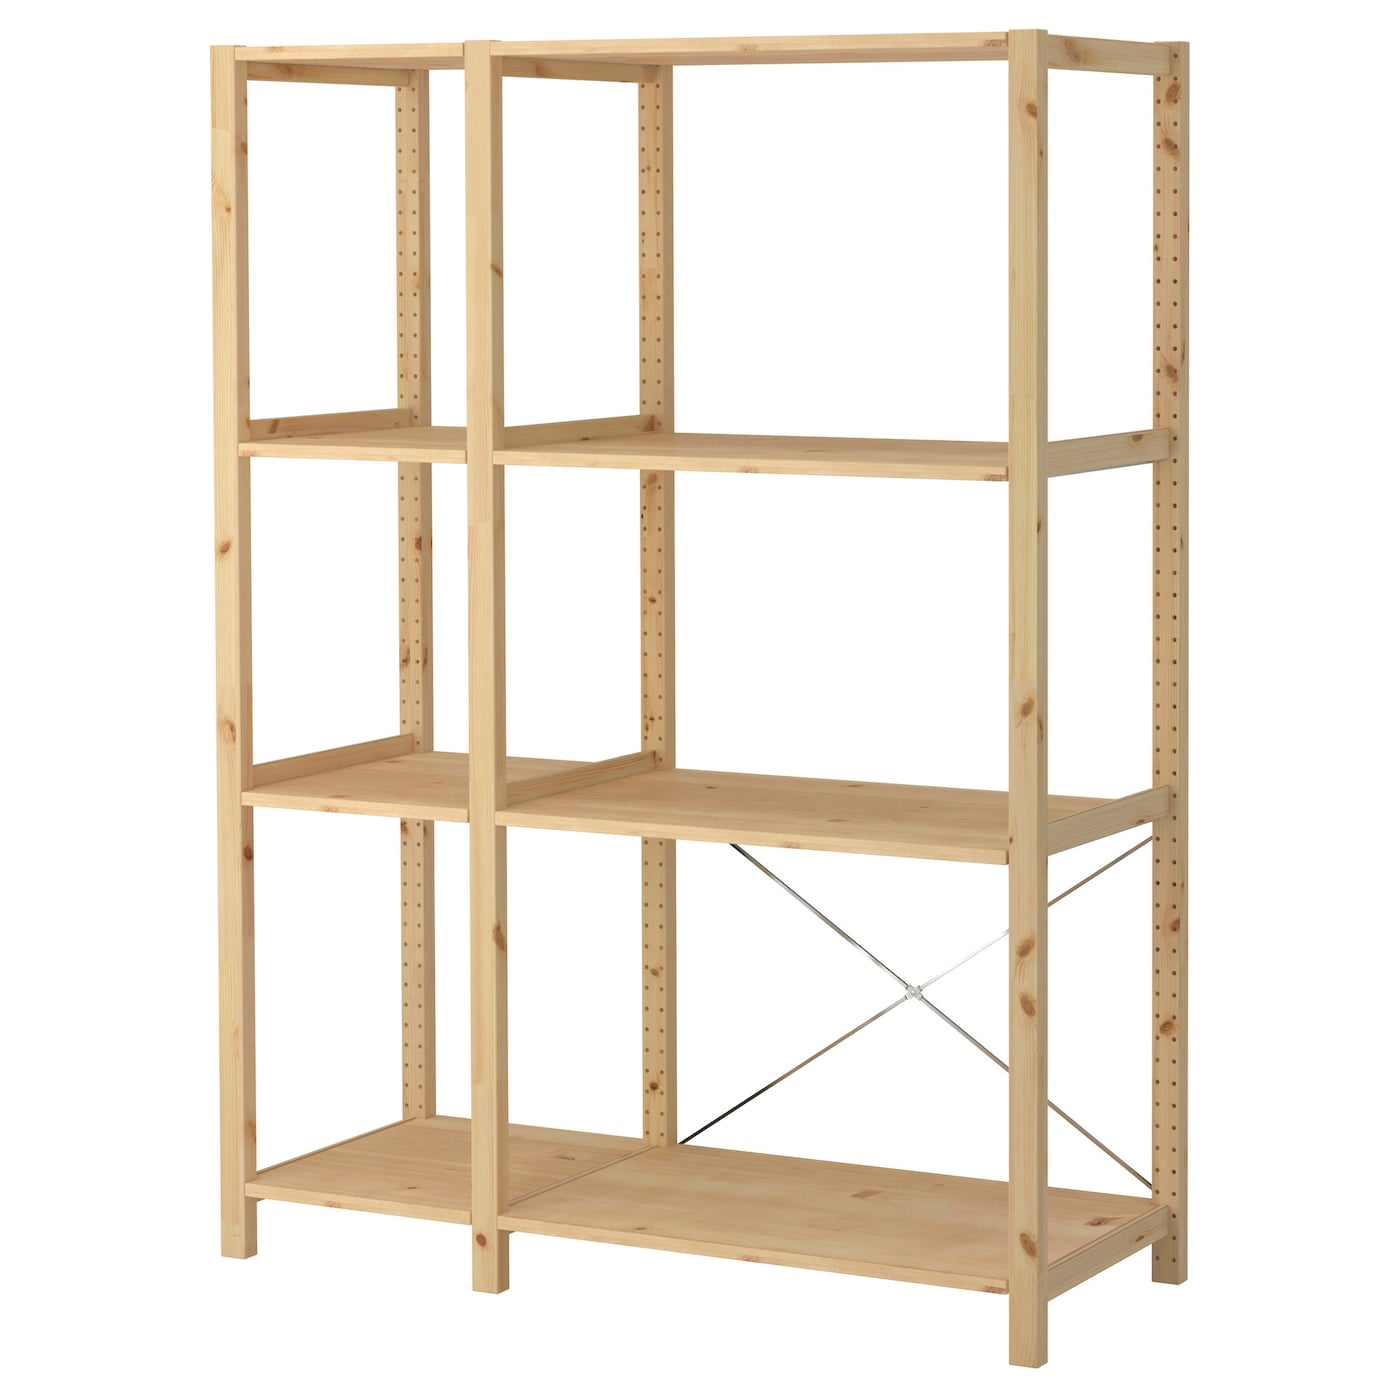 Ivar 2 sections shelves pine 134x50x179 cm ikea for Ladenblok ivar ikea